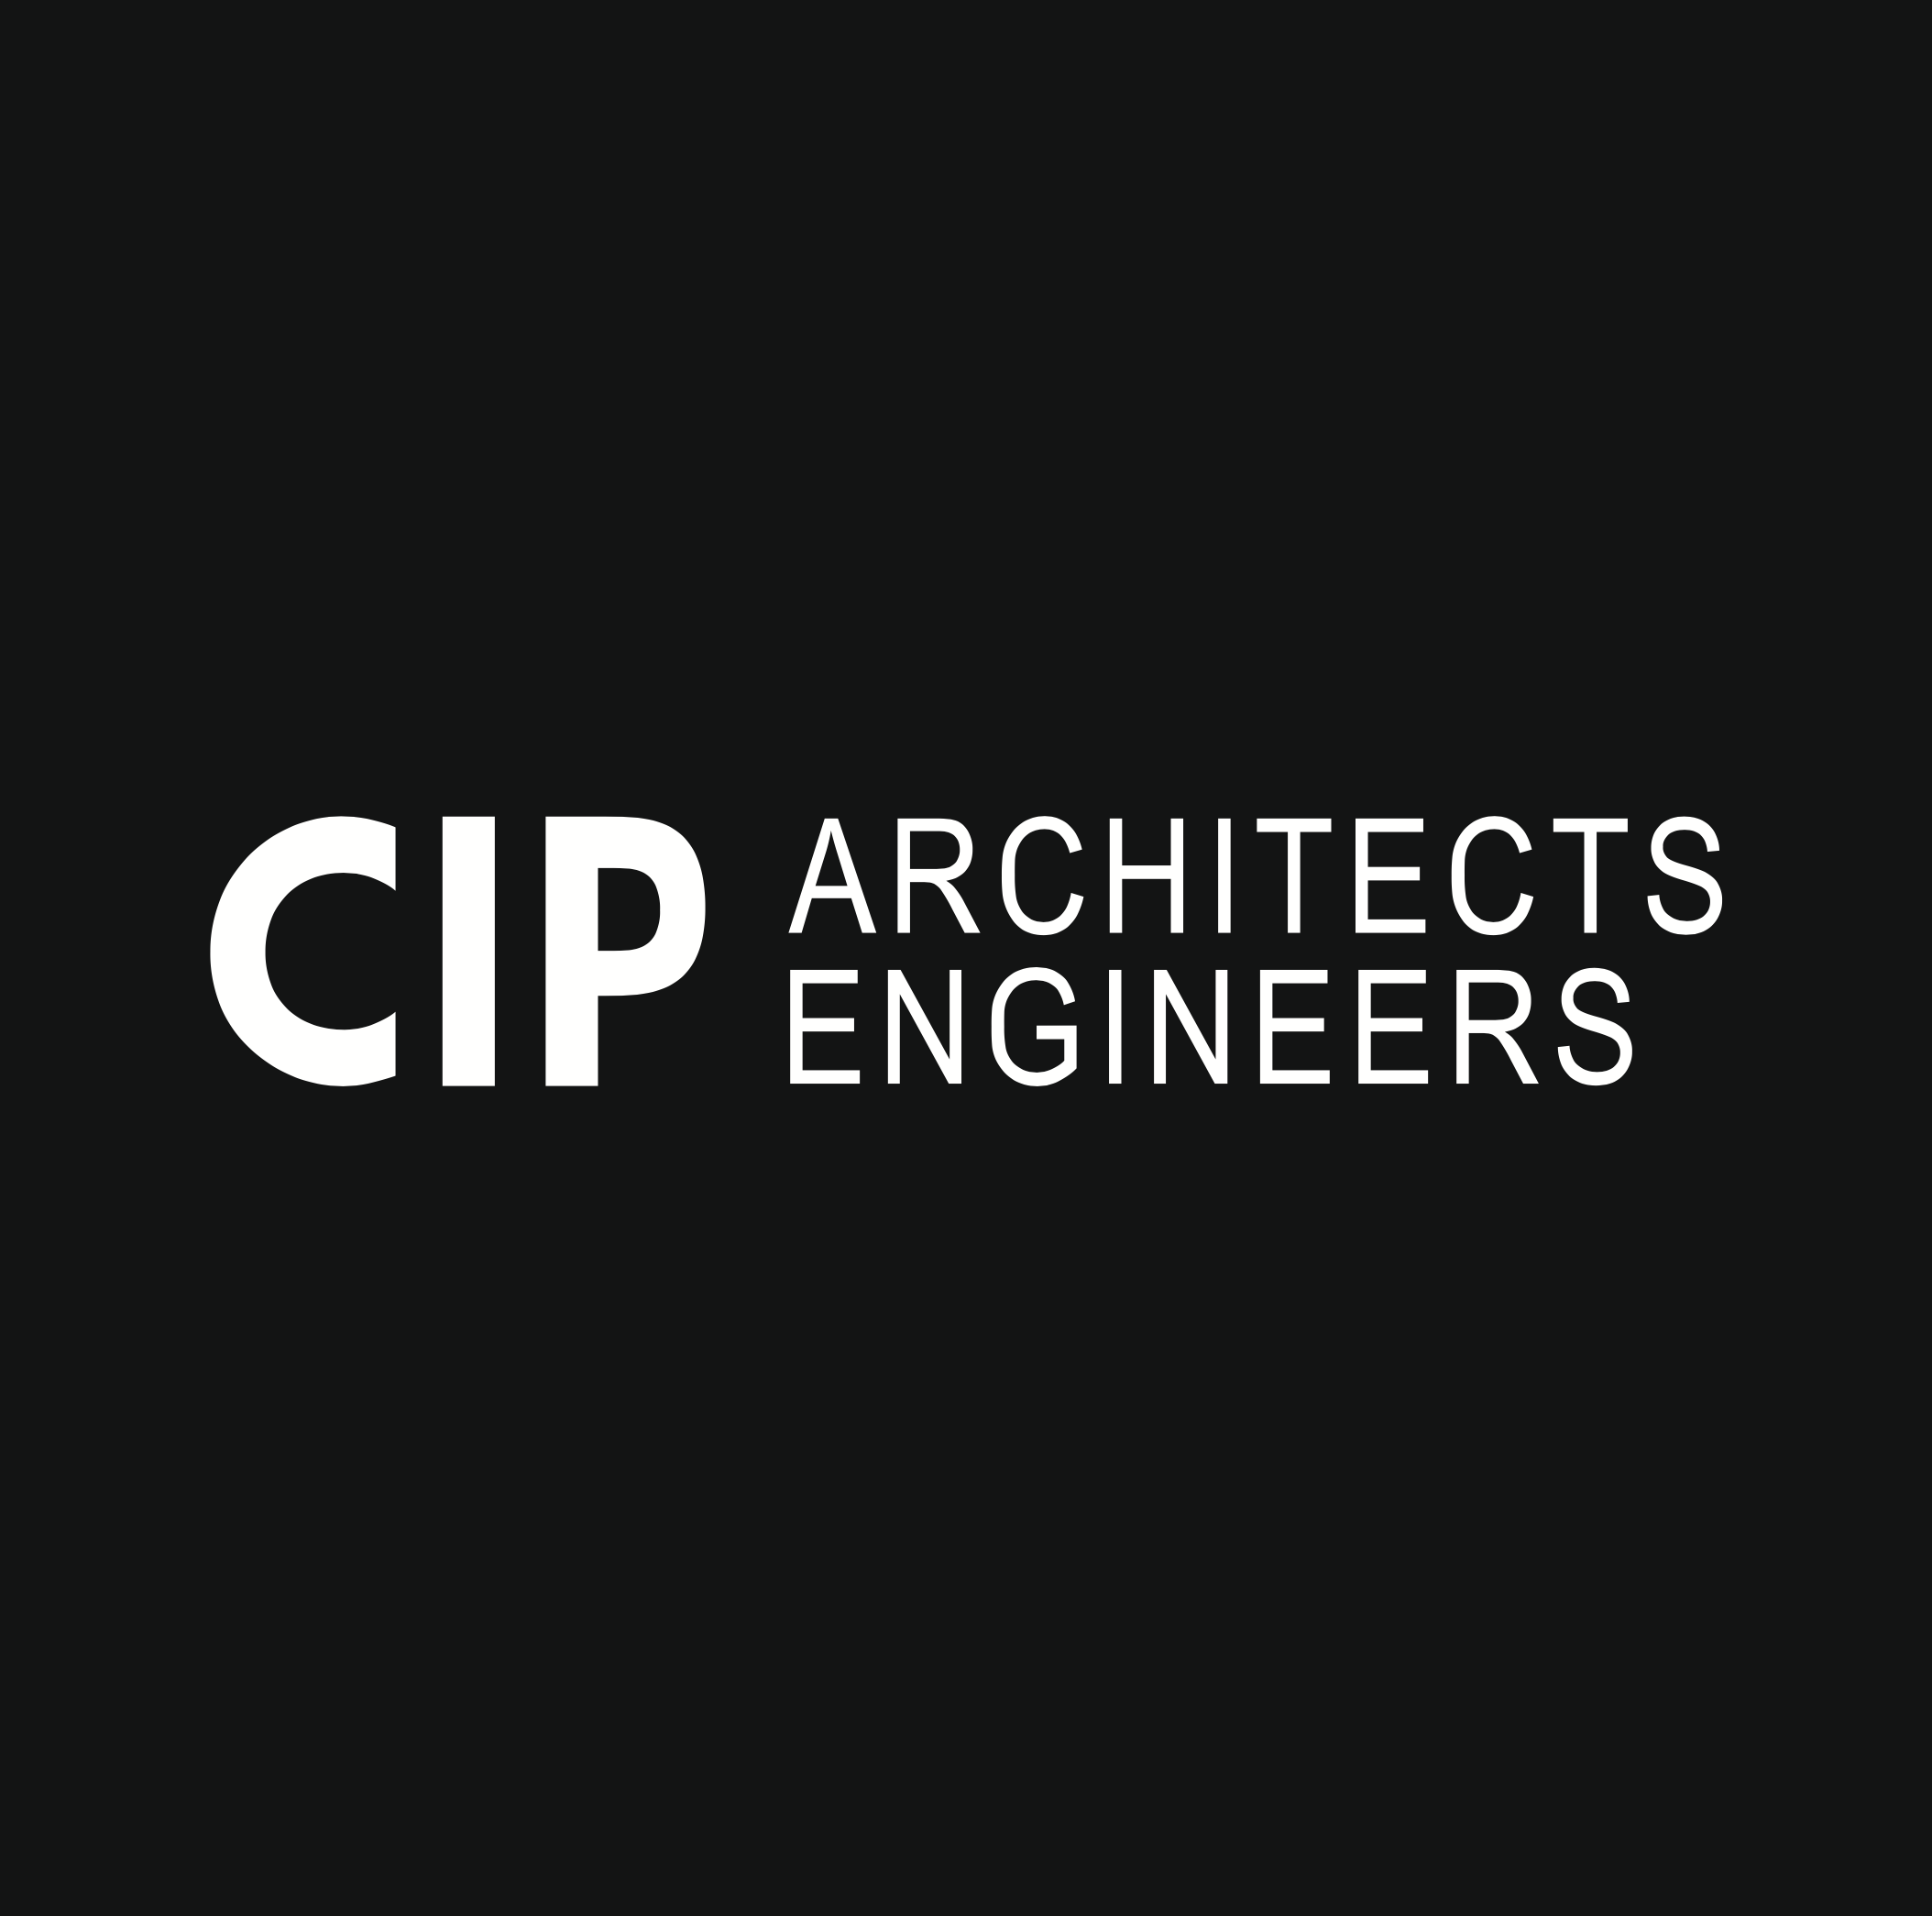 CIP architects engineers